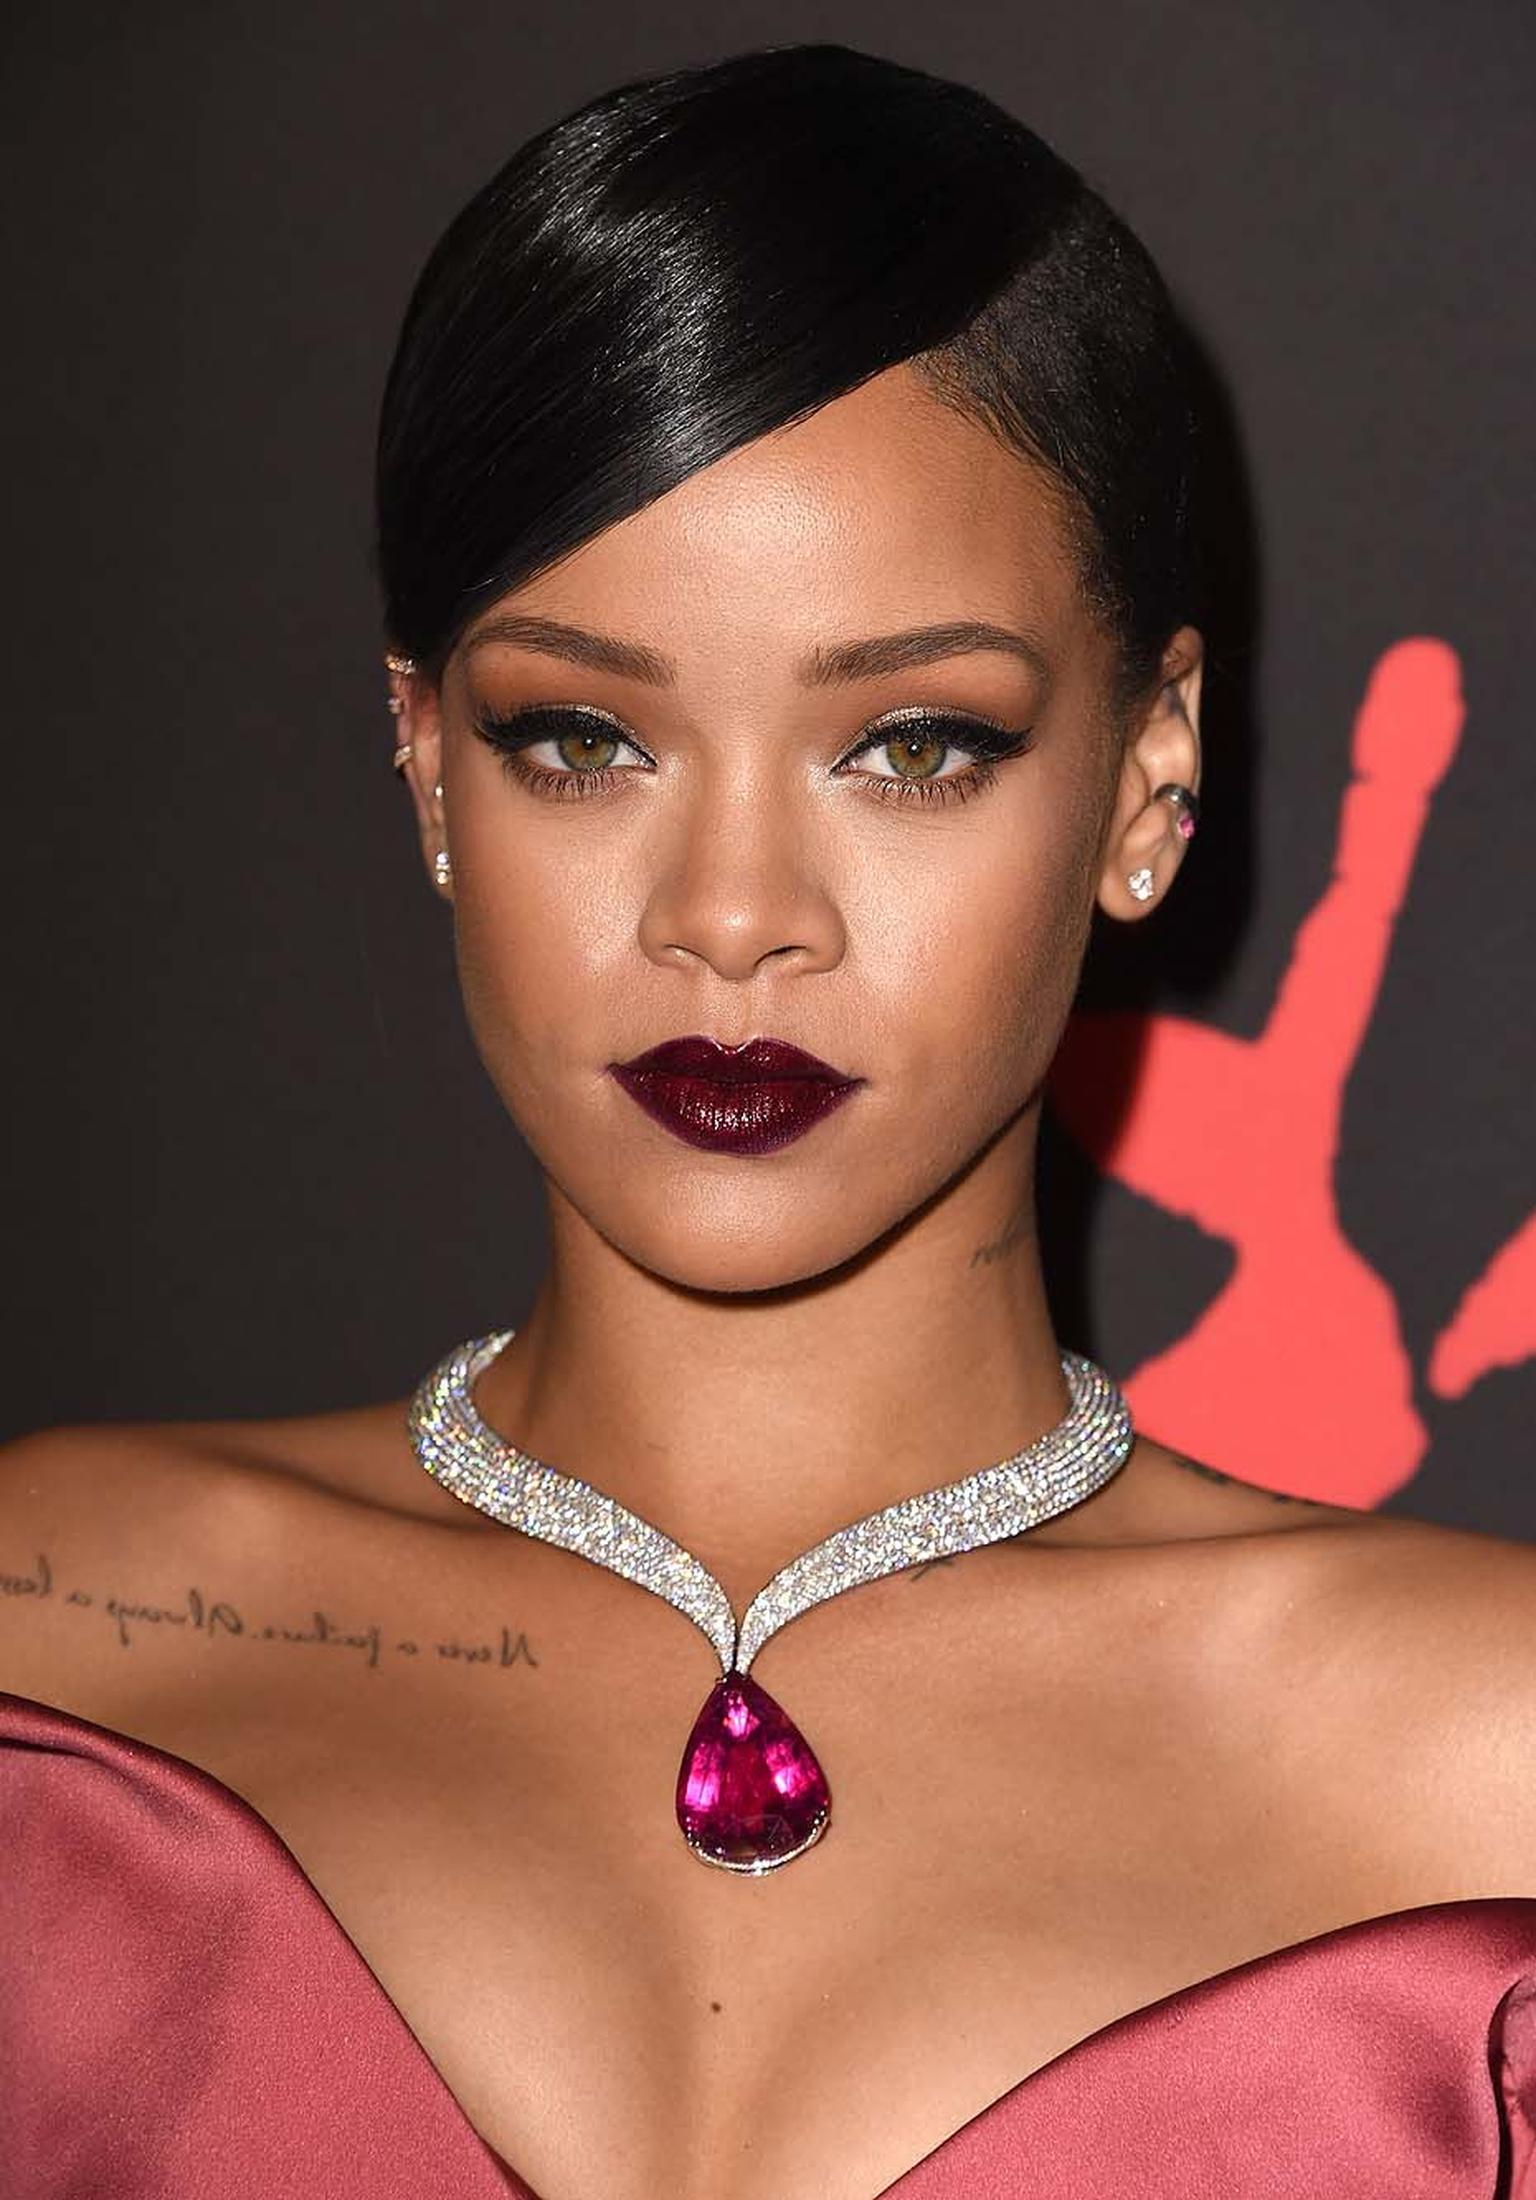 Perching just above Rihanna's racy décolleté, the curvaceous singer flaunted a bright pink rubellite and diamond Chopard necklace.